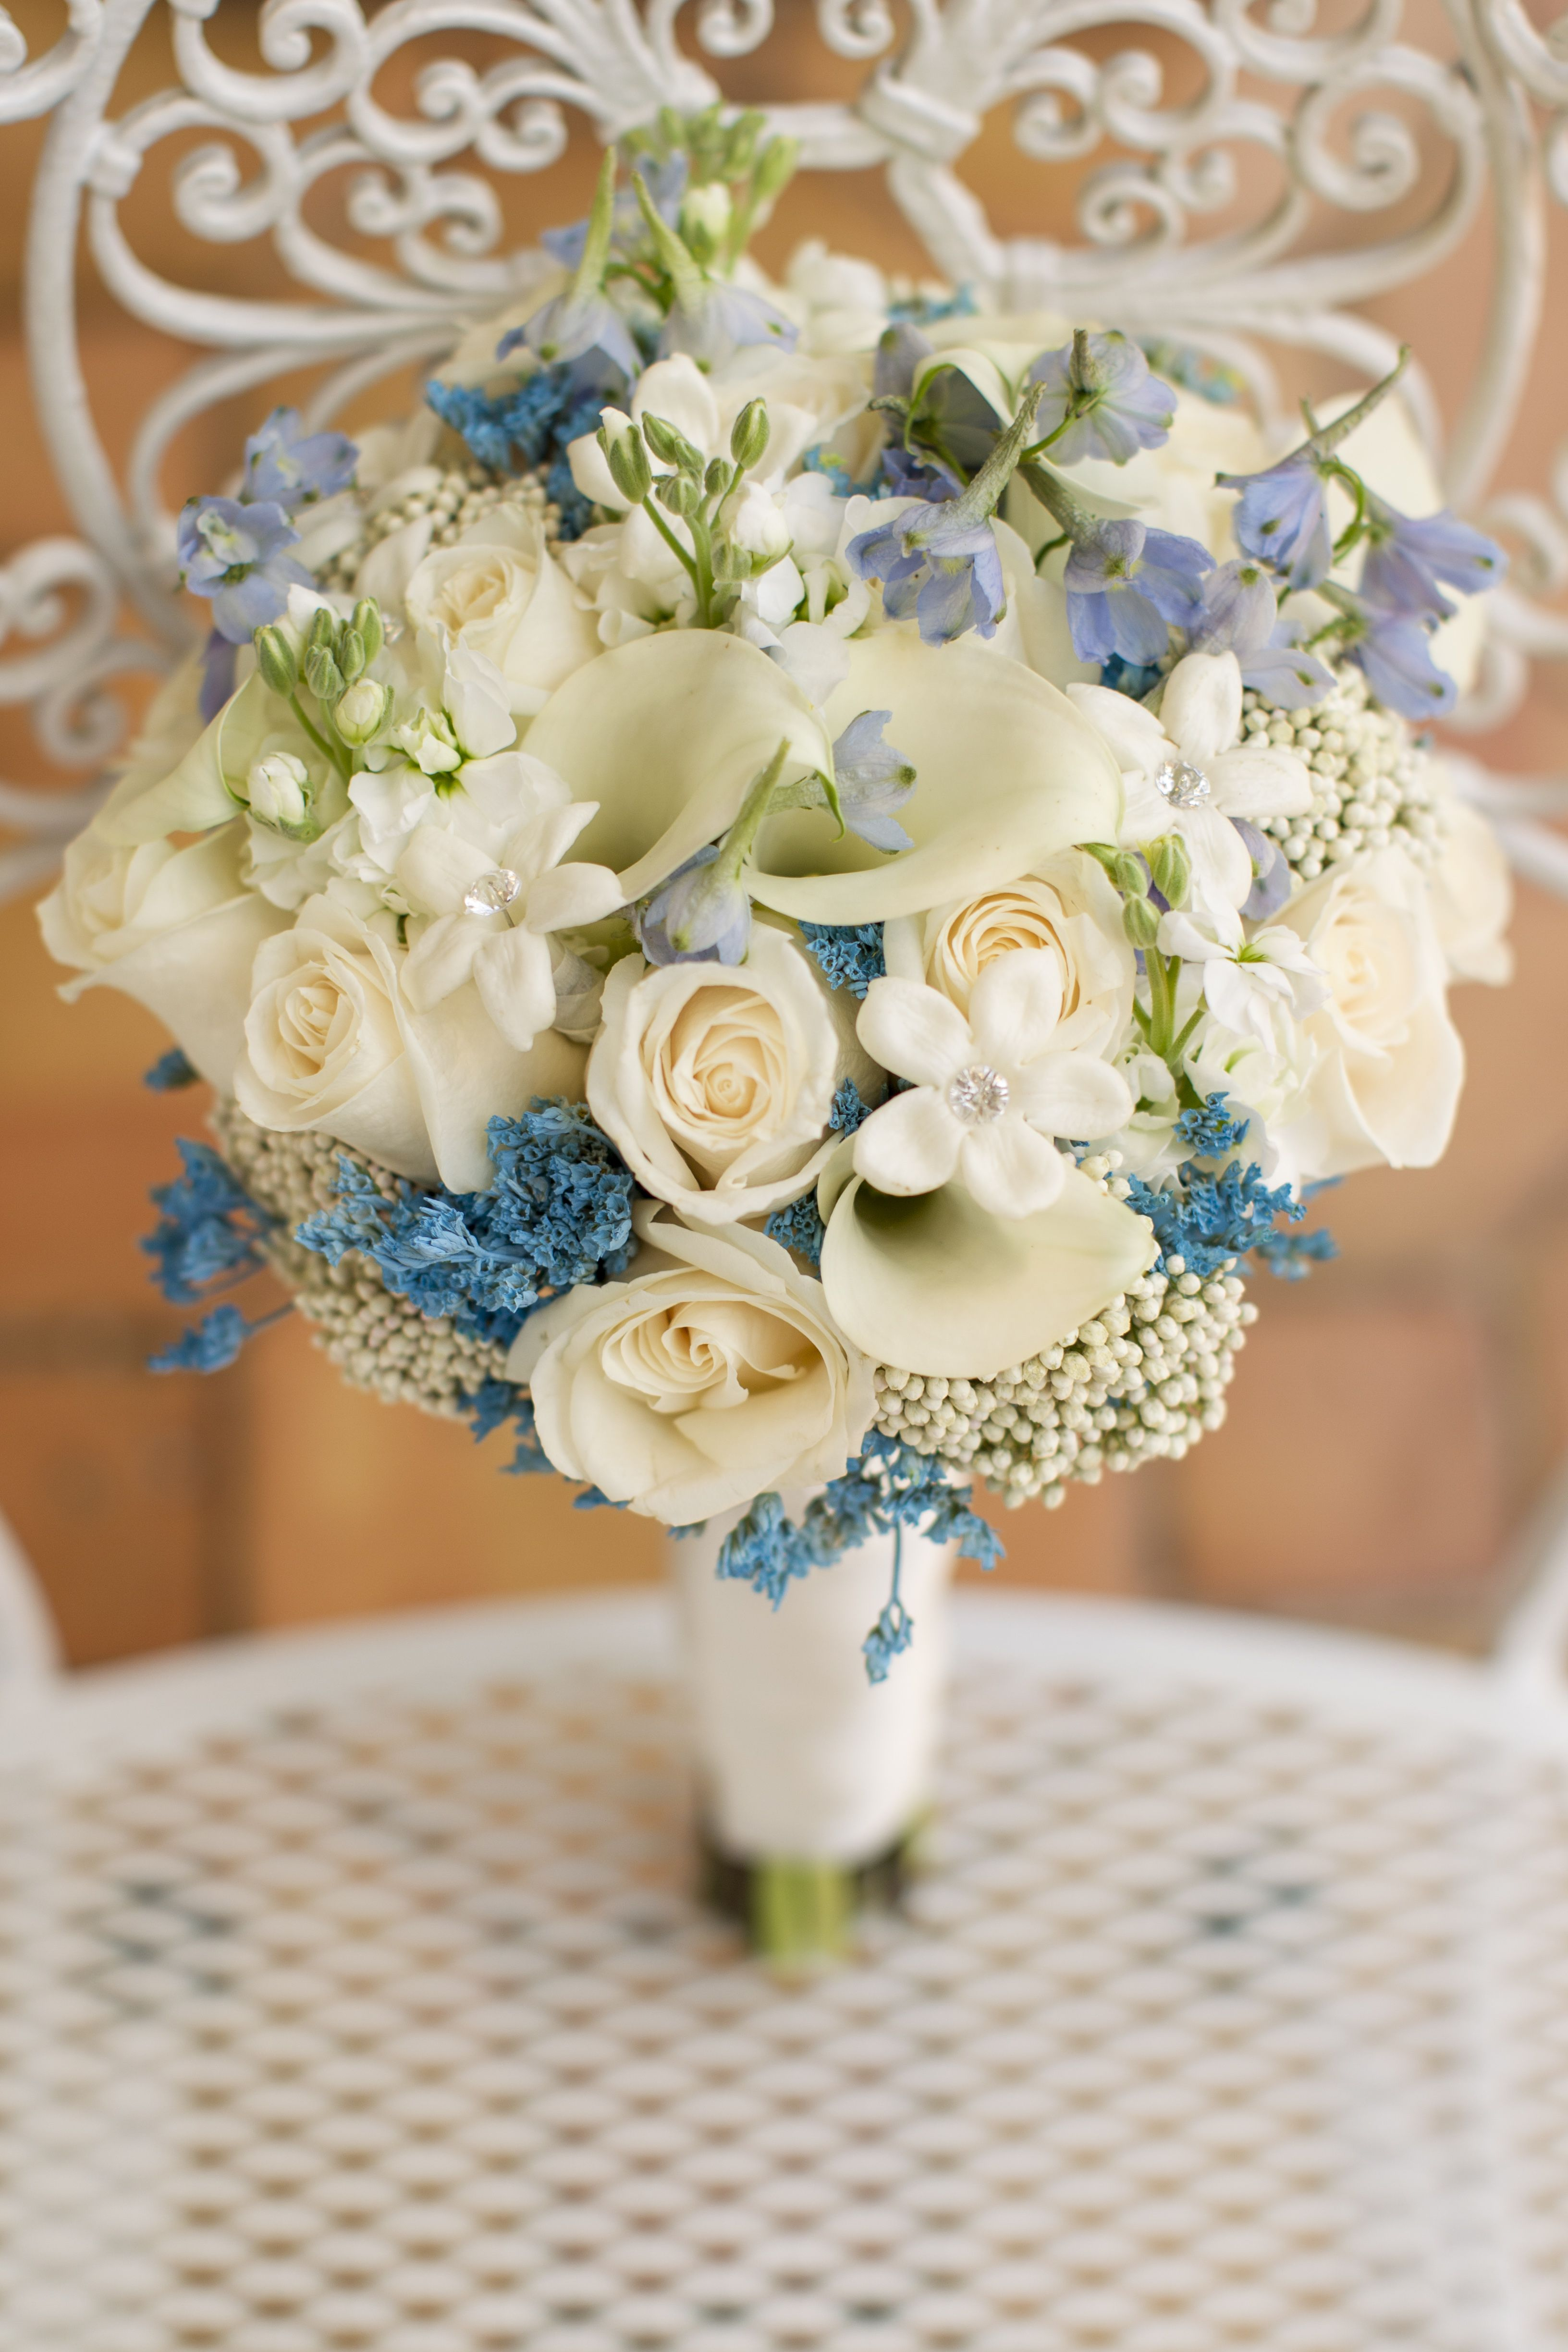 Bride S Ivory White Bouquet With A Touch Of Blue